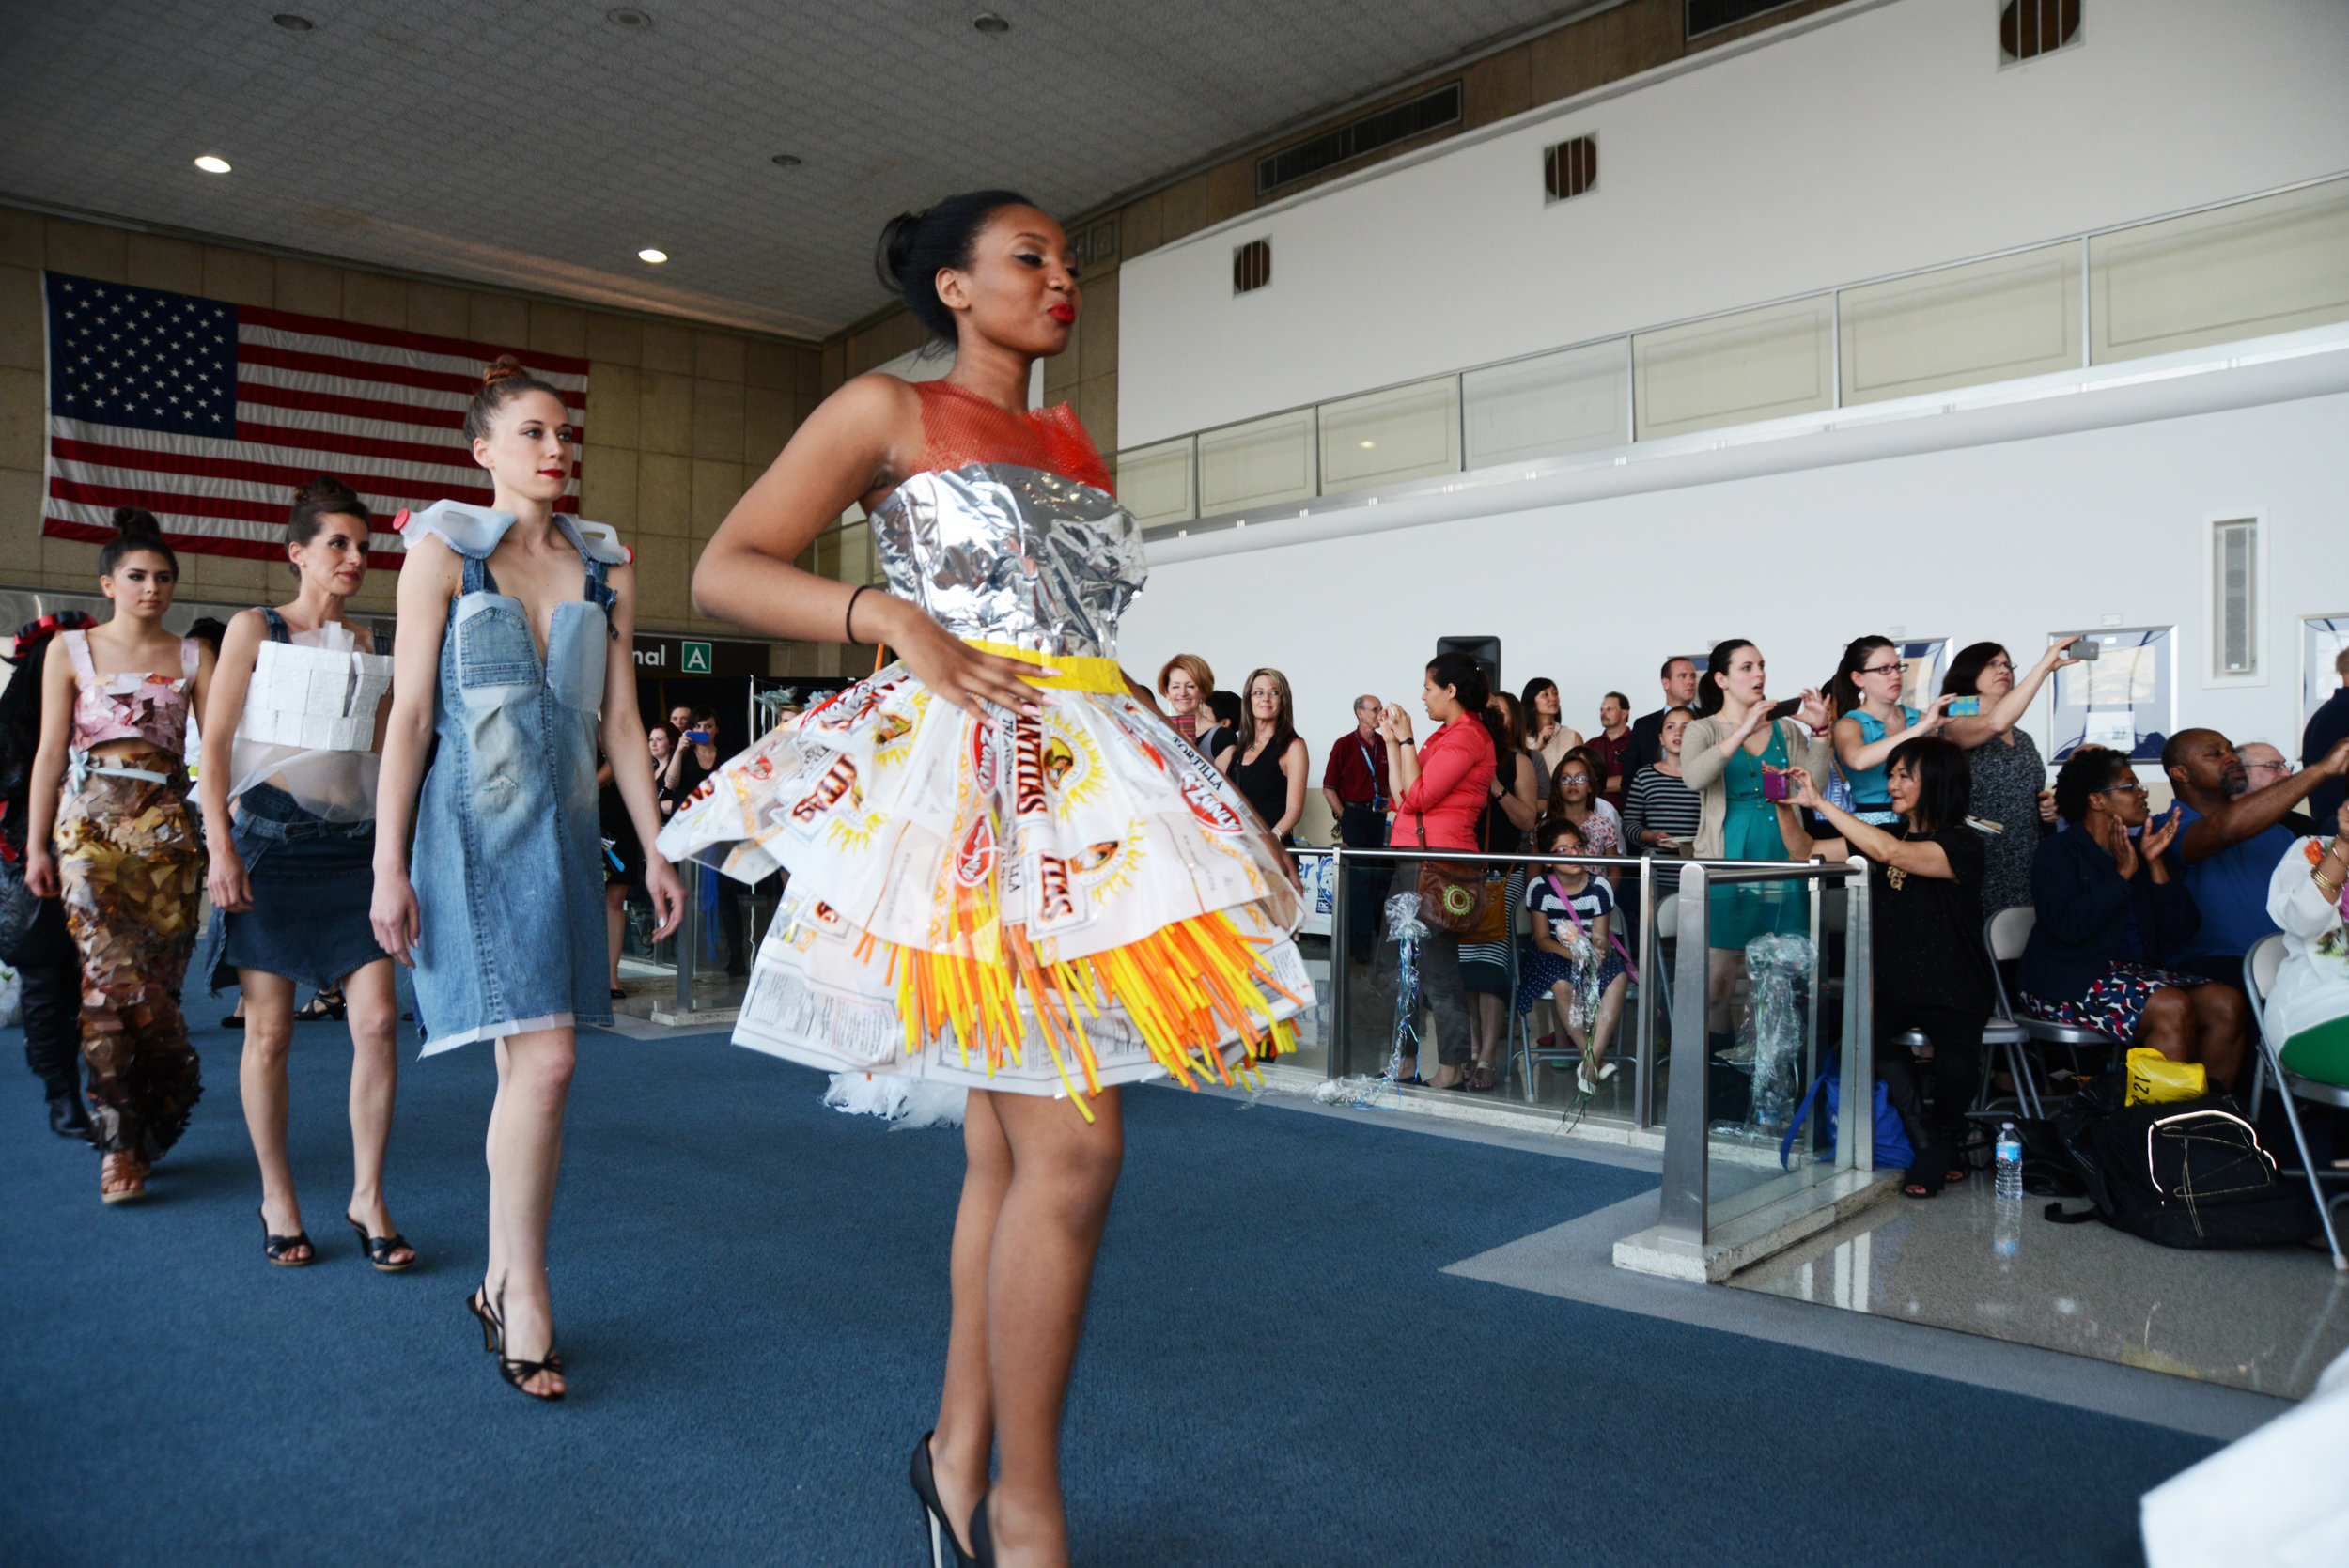 DCPS Annual Art Show with students in the  Trashion Fashion Show